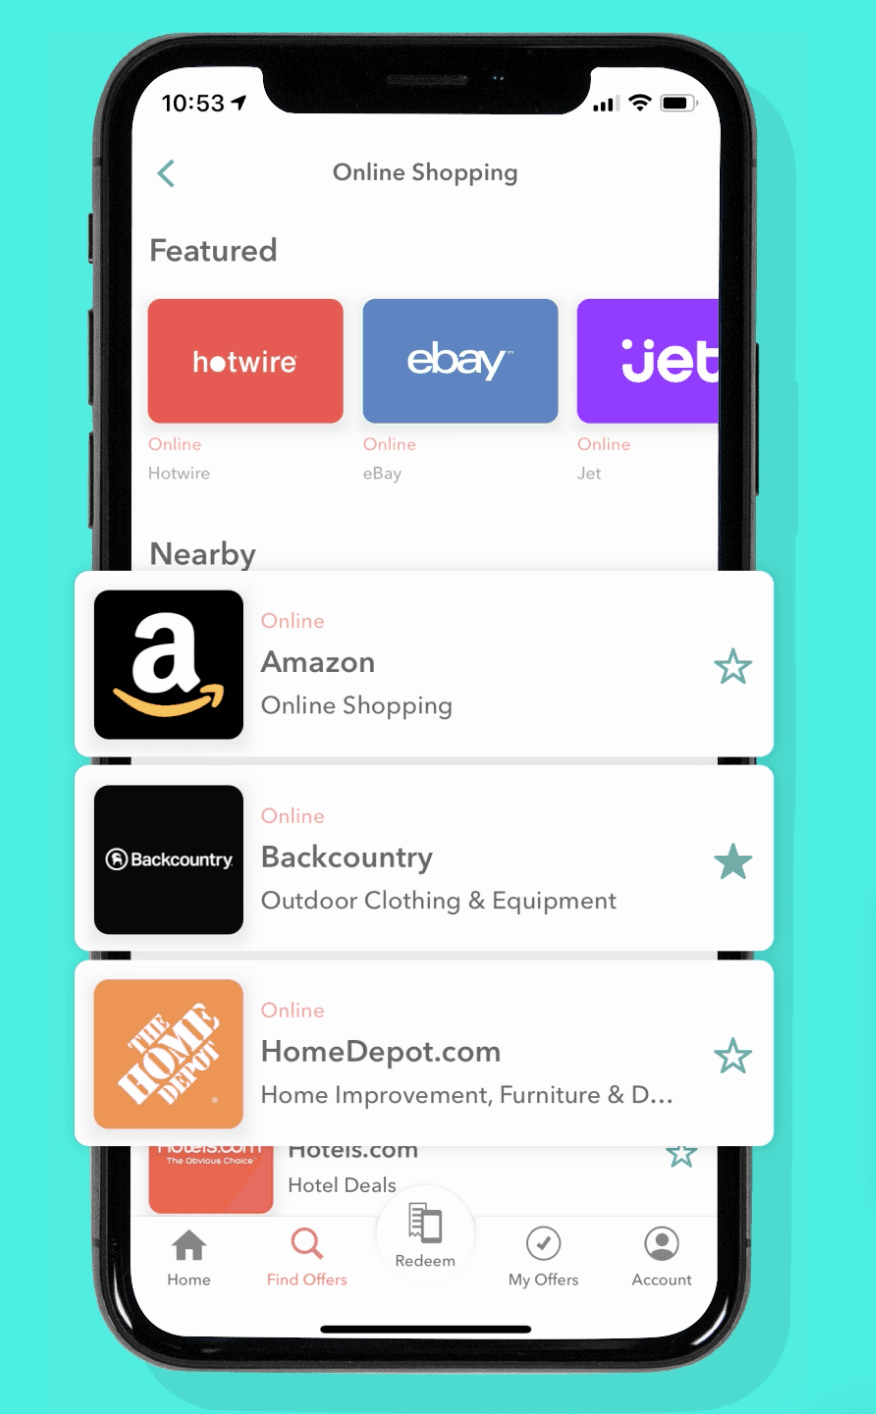 Ibotta Referral Code September 2019 : Get $20 in Bonuses